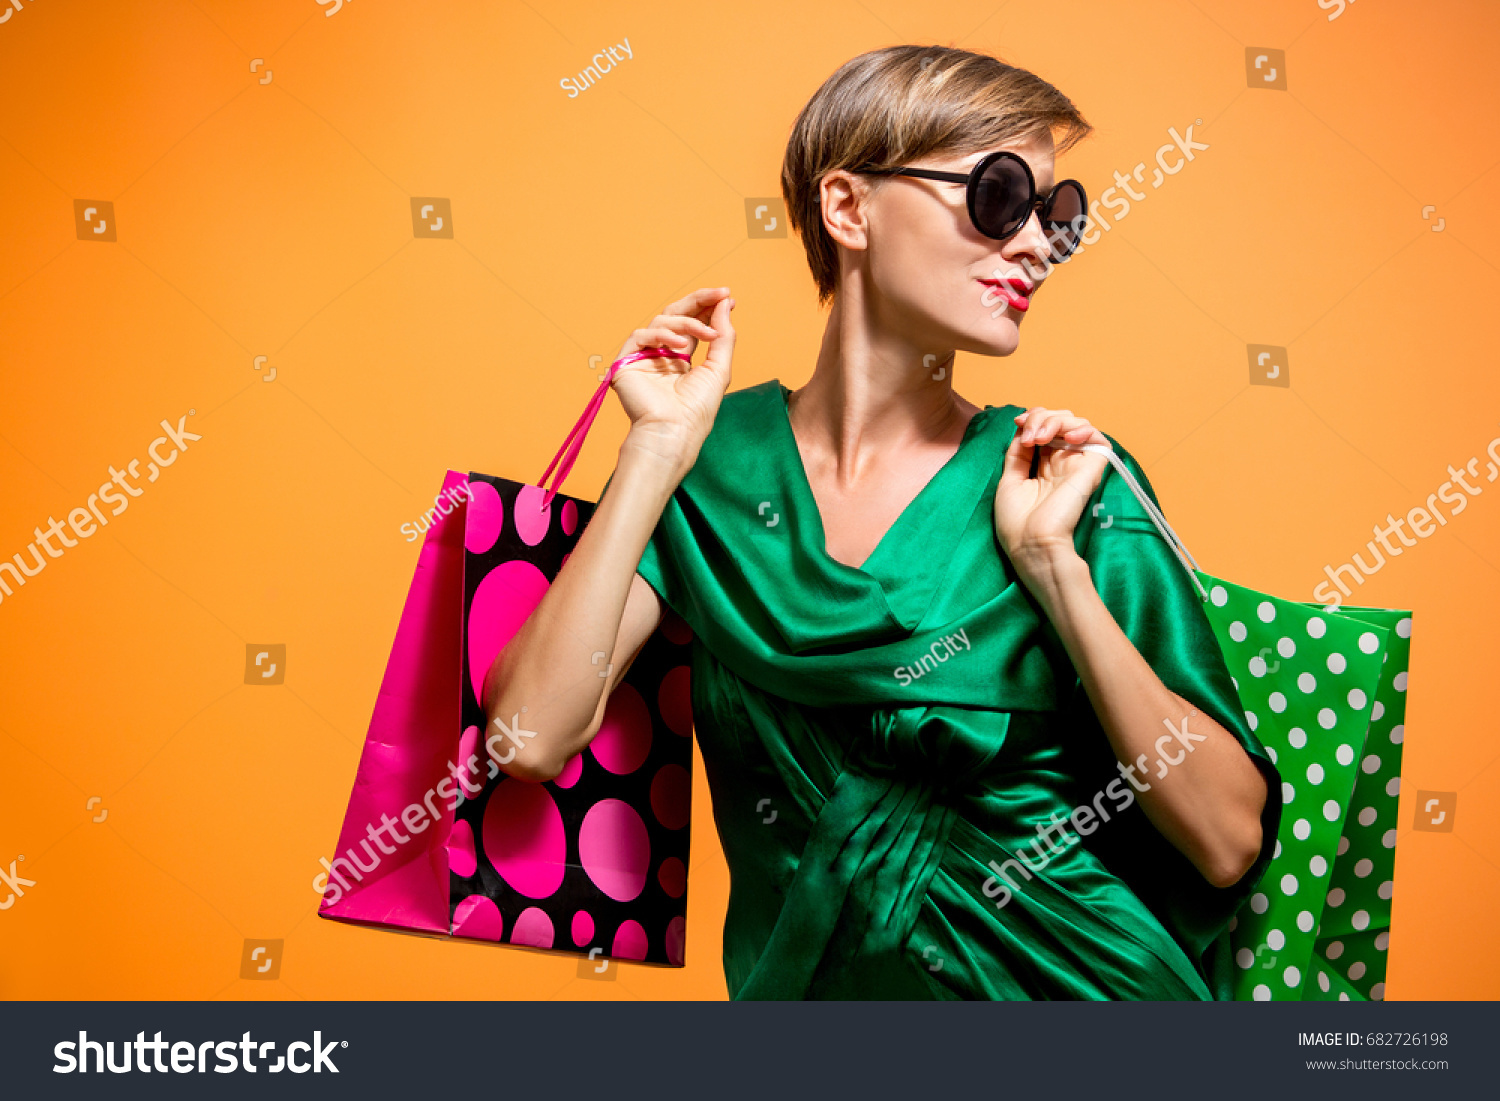 stock-photo-young-happy-summer-shopping-woman-with-shopping-bags-looking-sideways-isolated-over-bright-orange-682726198.jpg